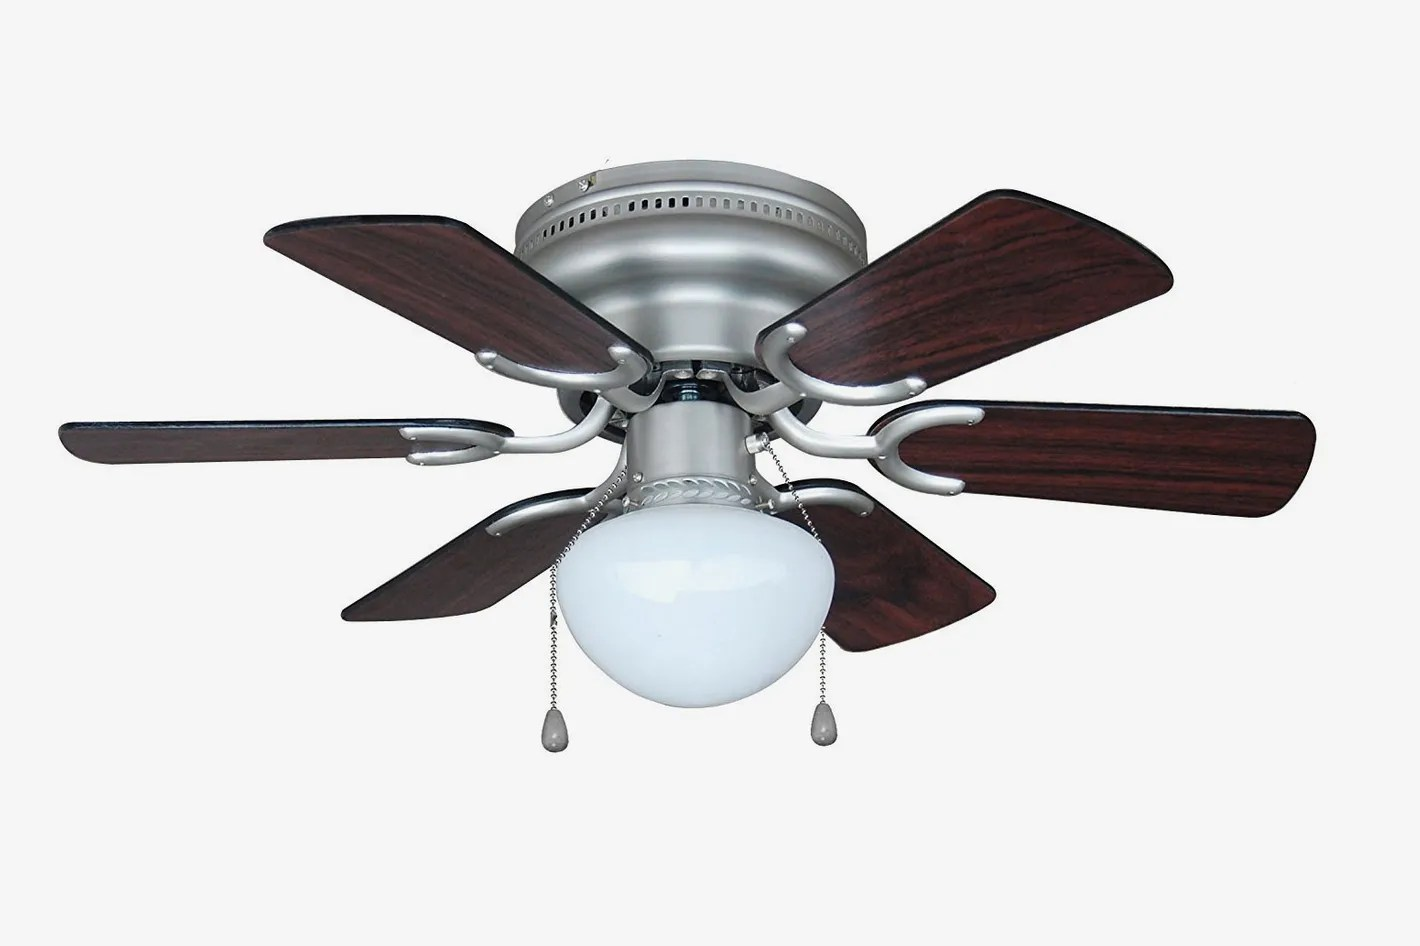 Best Ceiling Fans For Small Rooms The 9 Best Ceiling Fans On Amazon 2018